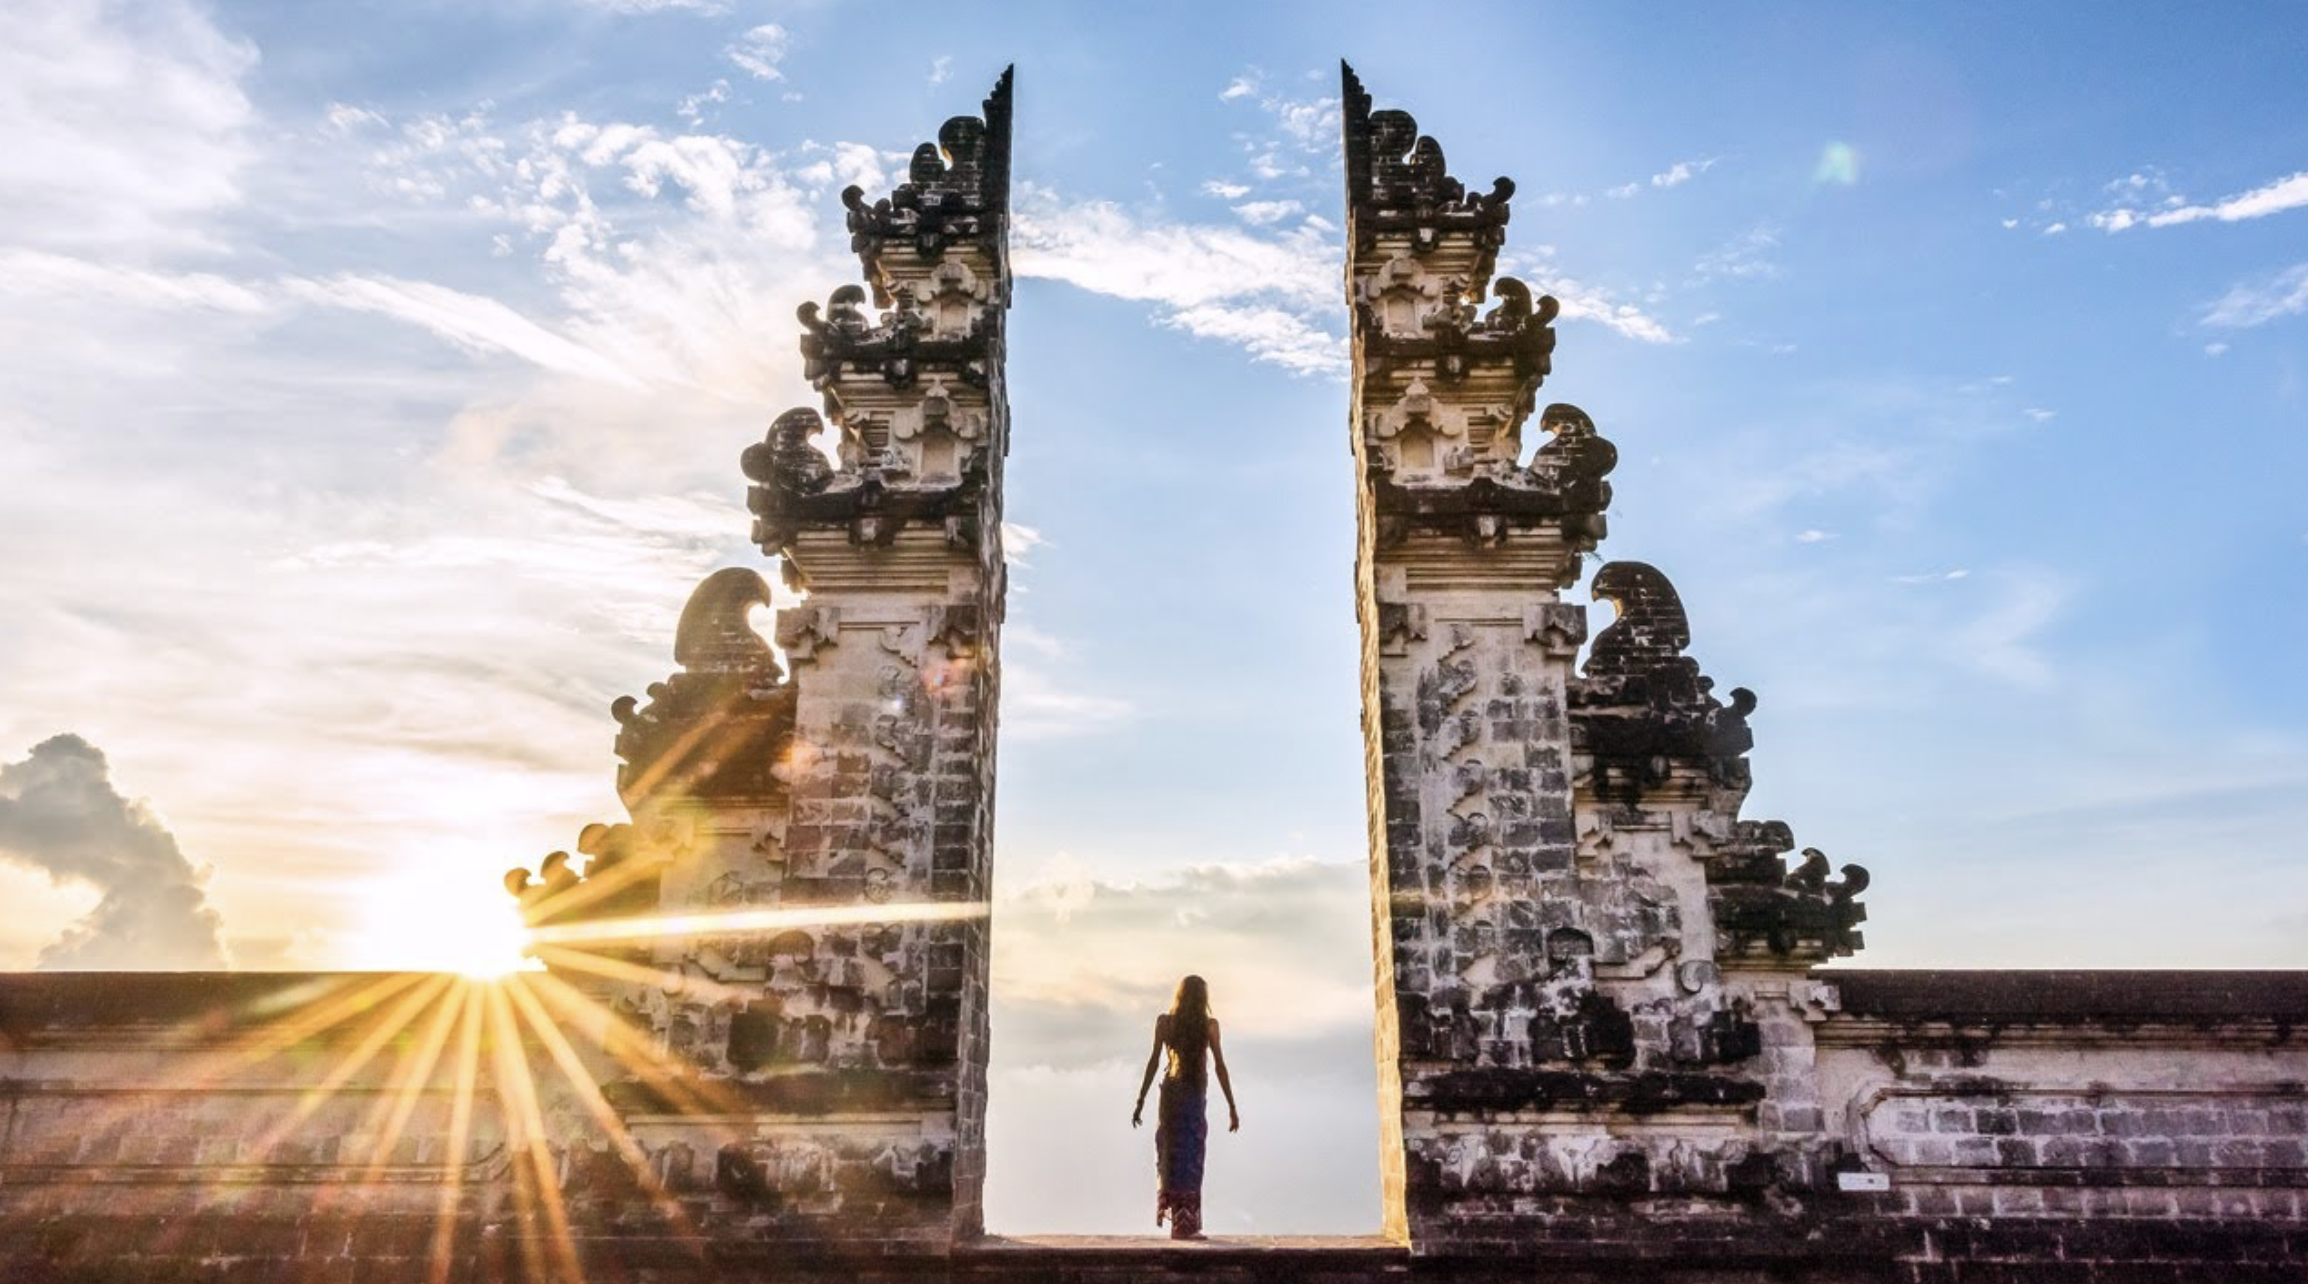 Bali Instagram Tour: The Most Famous Spots (Private Tour) - $109/ppOur Bali Instagram tour by ForeverVacation Bali is one of our most popular tours we currently offer. This privately guided, full-day tour, will take you to the most famous spots on the beautiful island of Bali. All of your favorite pictures you see on your friends newsfeed will now become your reality. From beginning to the end you will be able to have a fun, stress-free day as this tour is all-inclusive to ensure you will have an unforgettable experience.You will have the chance to visit the most famous spots in Bali such as:.Gates of Heaven at Pura Lempuyang TempleBeautiful views of Mount AgungTirta GanggaTukad Cepung WaterfallTegalalang rice terracesFamous jungle swingFull Tour Schedule6:00 AM – Pick up at your hotel (exact time may vary depending on your location)9:00 AM – Arrive at Tirta Gangga9:30 AM – Arrive at Pura Lempuyang Temple (views of Mount Agung)12:00 PM – Lunch Time!1:00 PM – Finish lunch and continue your tour2:00 PM – Visit Tukad Cepung Waterfall4:00 PM – Visit Tegalalang rice terraces5:00 PM – Swing on the jungle swing at the famous coffee plantation6:00 PM – Return back to your hotel7:30 PM – Arrive back at your hotel (exact time may vary depending on your location)